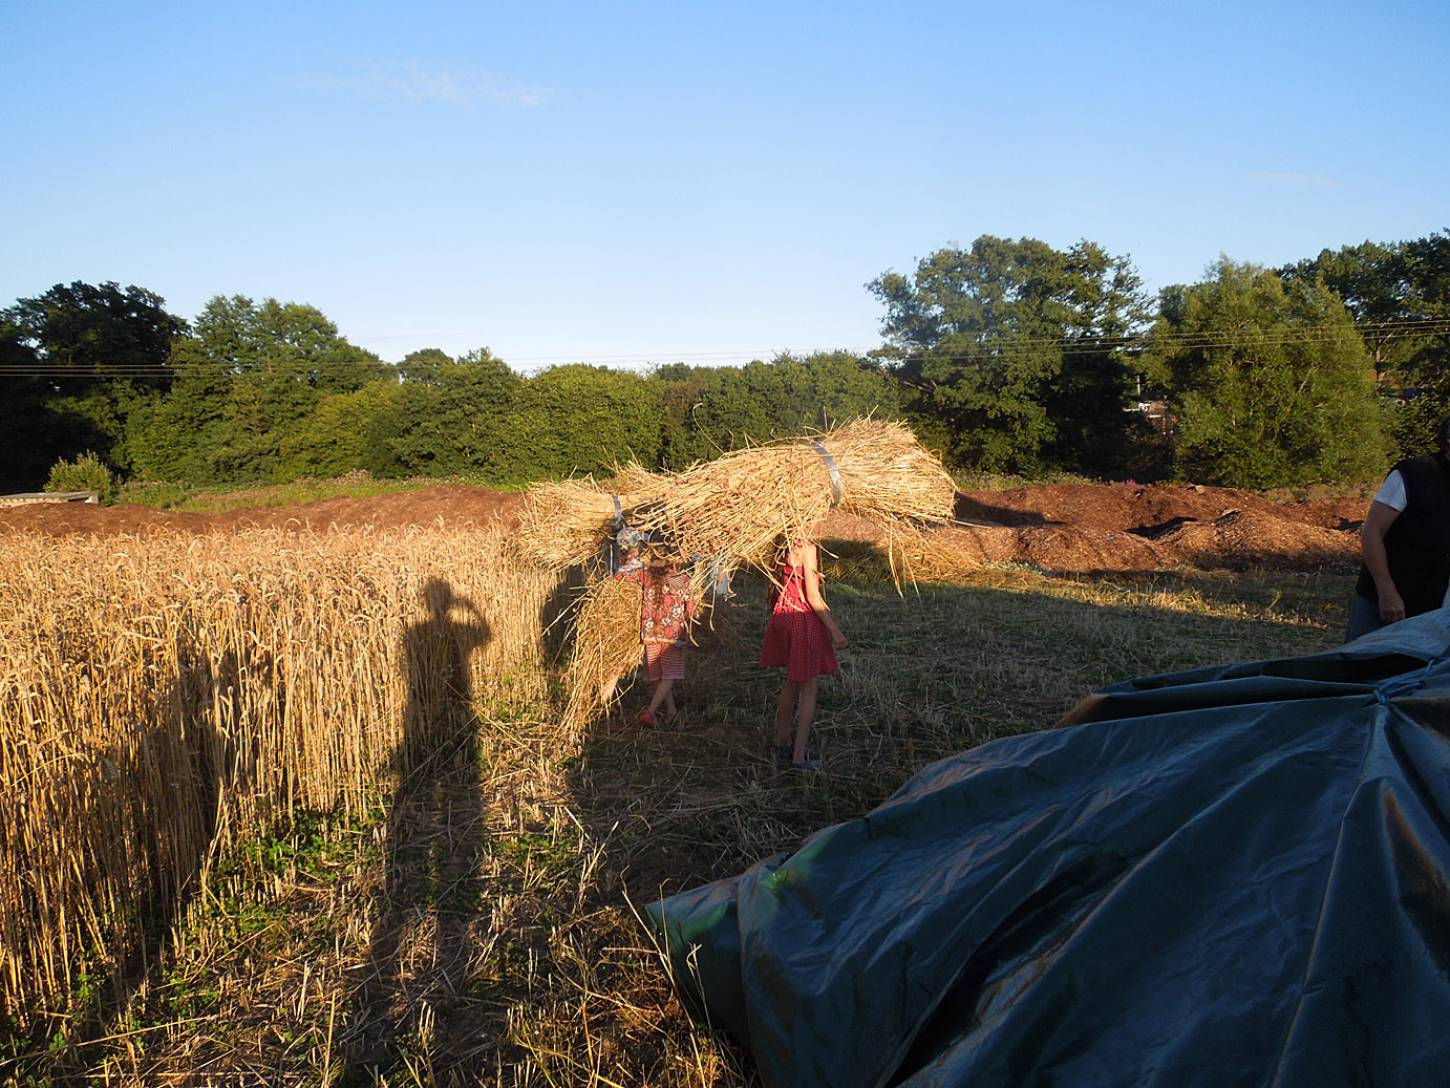 WoWo manual harvest - harvest home - 7:44pm&nbsp;9<sup>th</sup>&nbsp;Aug.&nbsp;'15